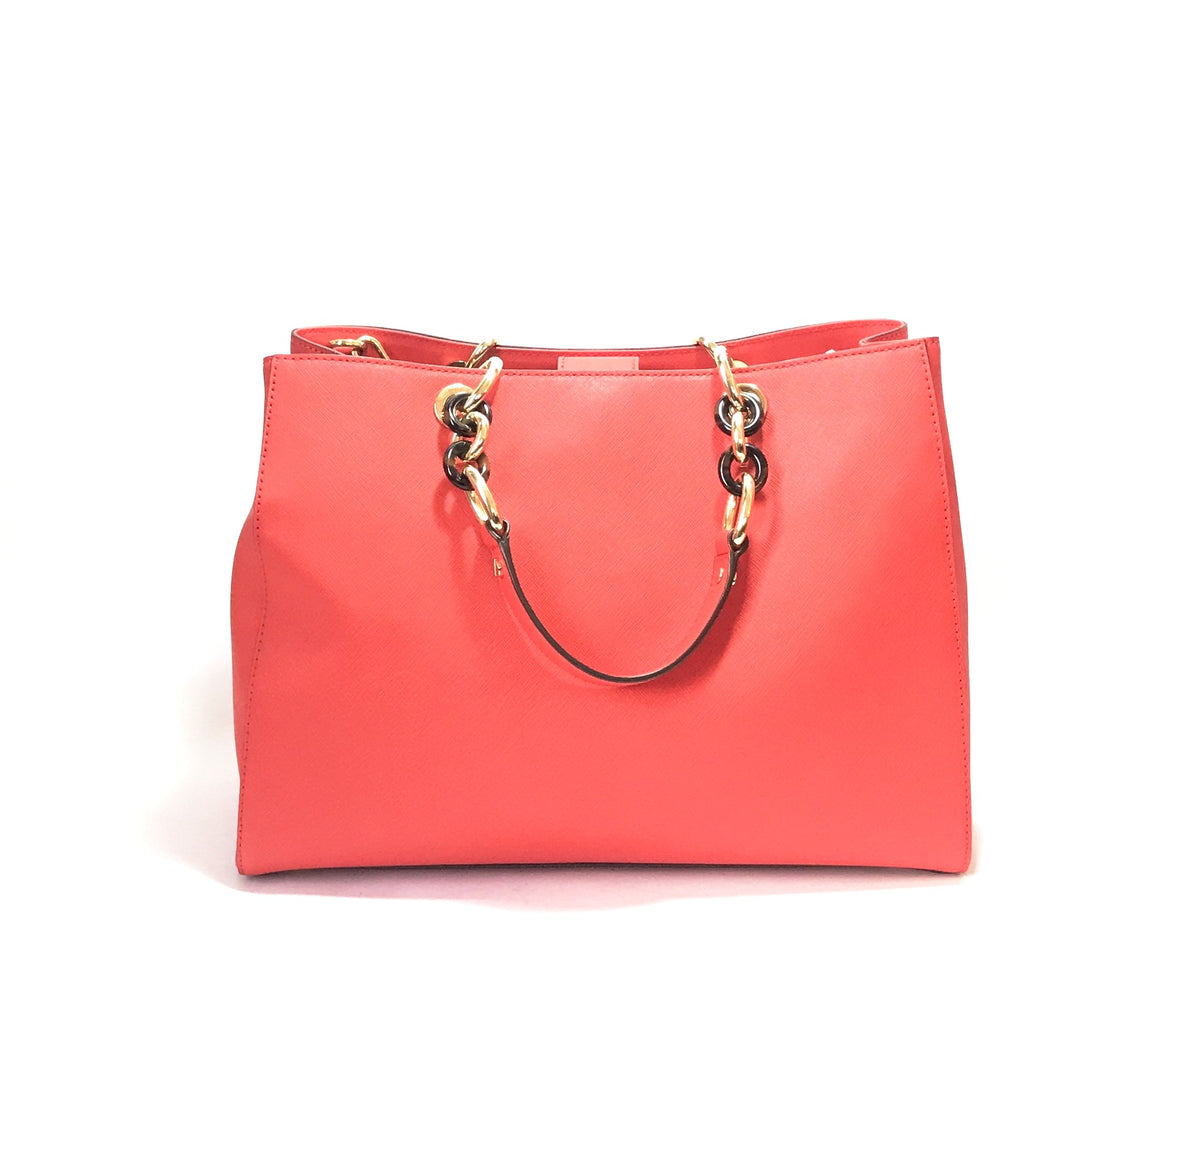 cdf89412e3 Michael Kors  CYNTHIA  Coral Leather Satchel